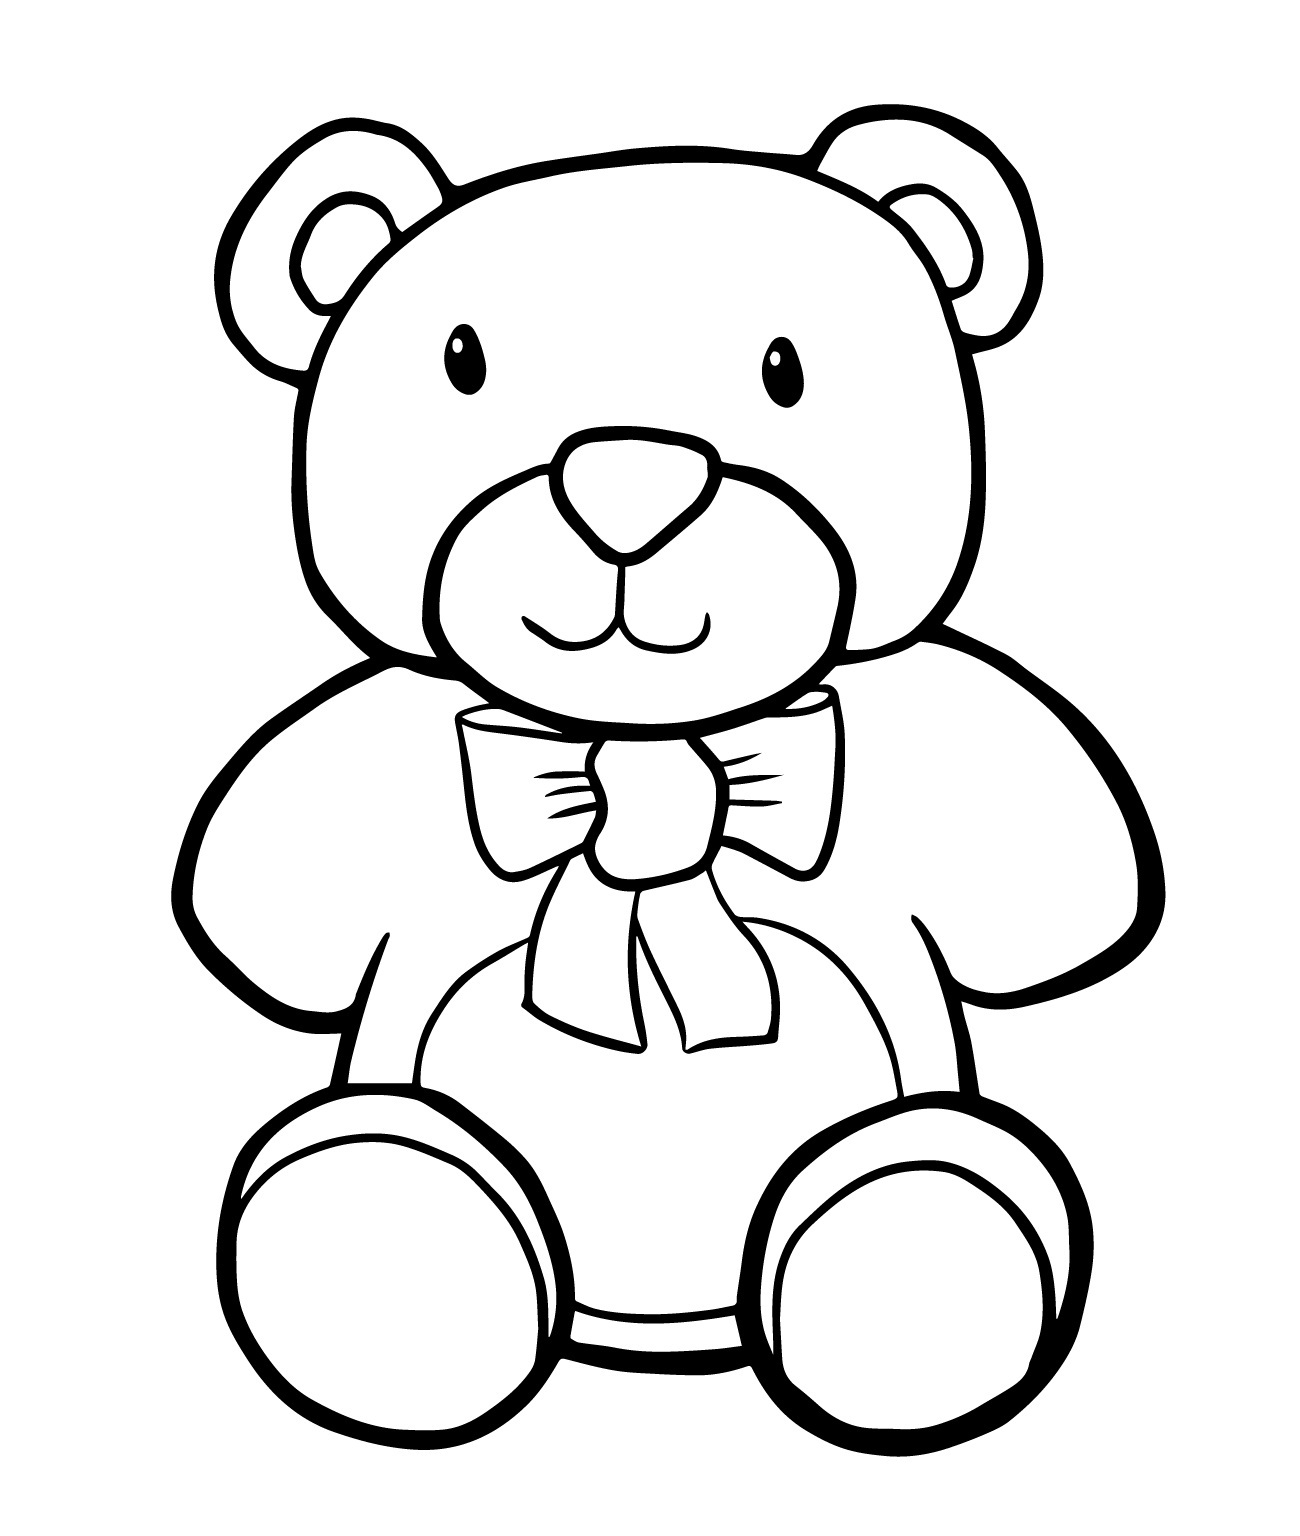 1300x1536 Miracle Teddy Bear Coloring Page Free Printable Pages For Kids